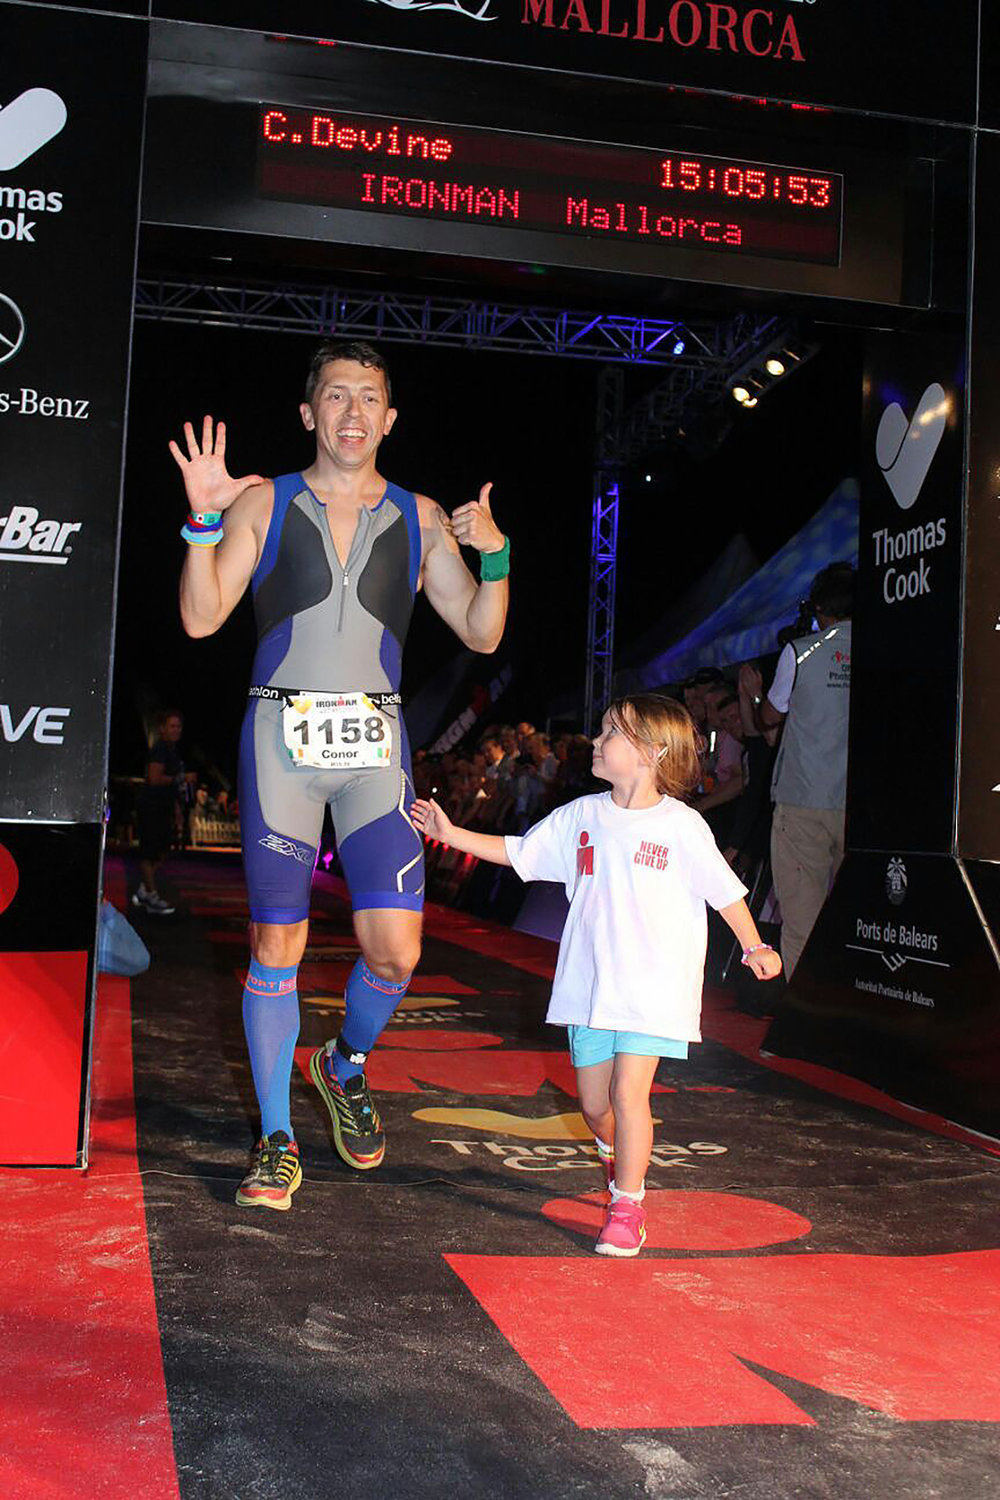 Crossing the finish line in Majorca with Lilyanna